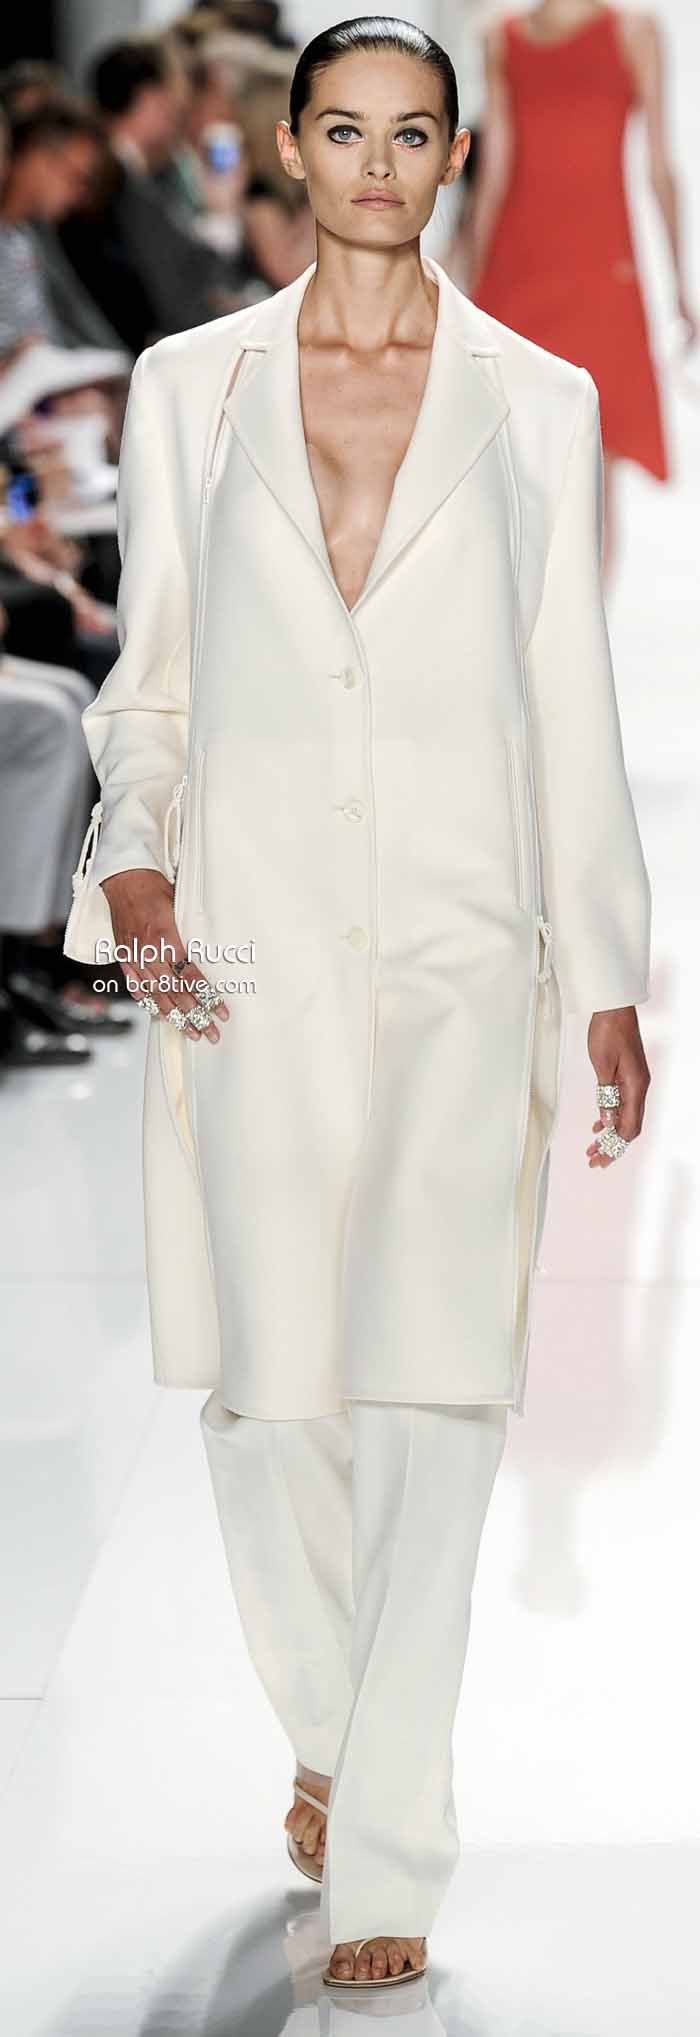 Ralph Rucci Spring 2014 #NYFW - Knee Length Off White Coat